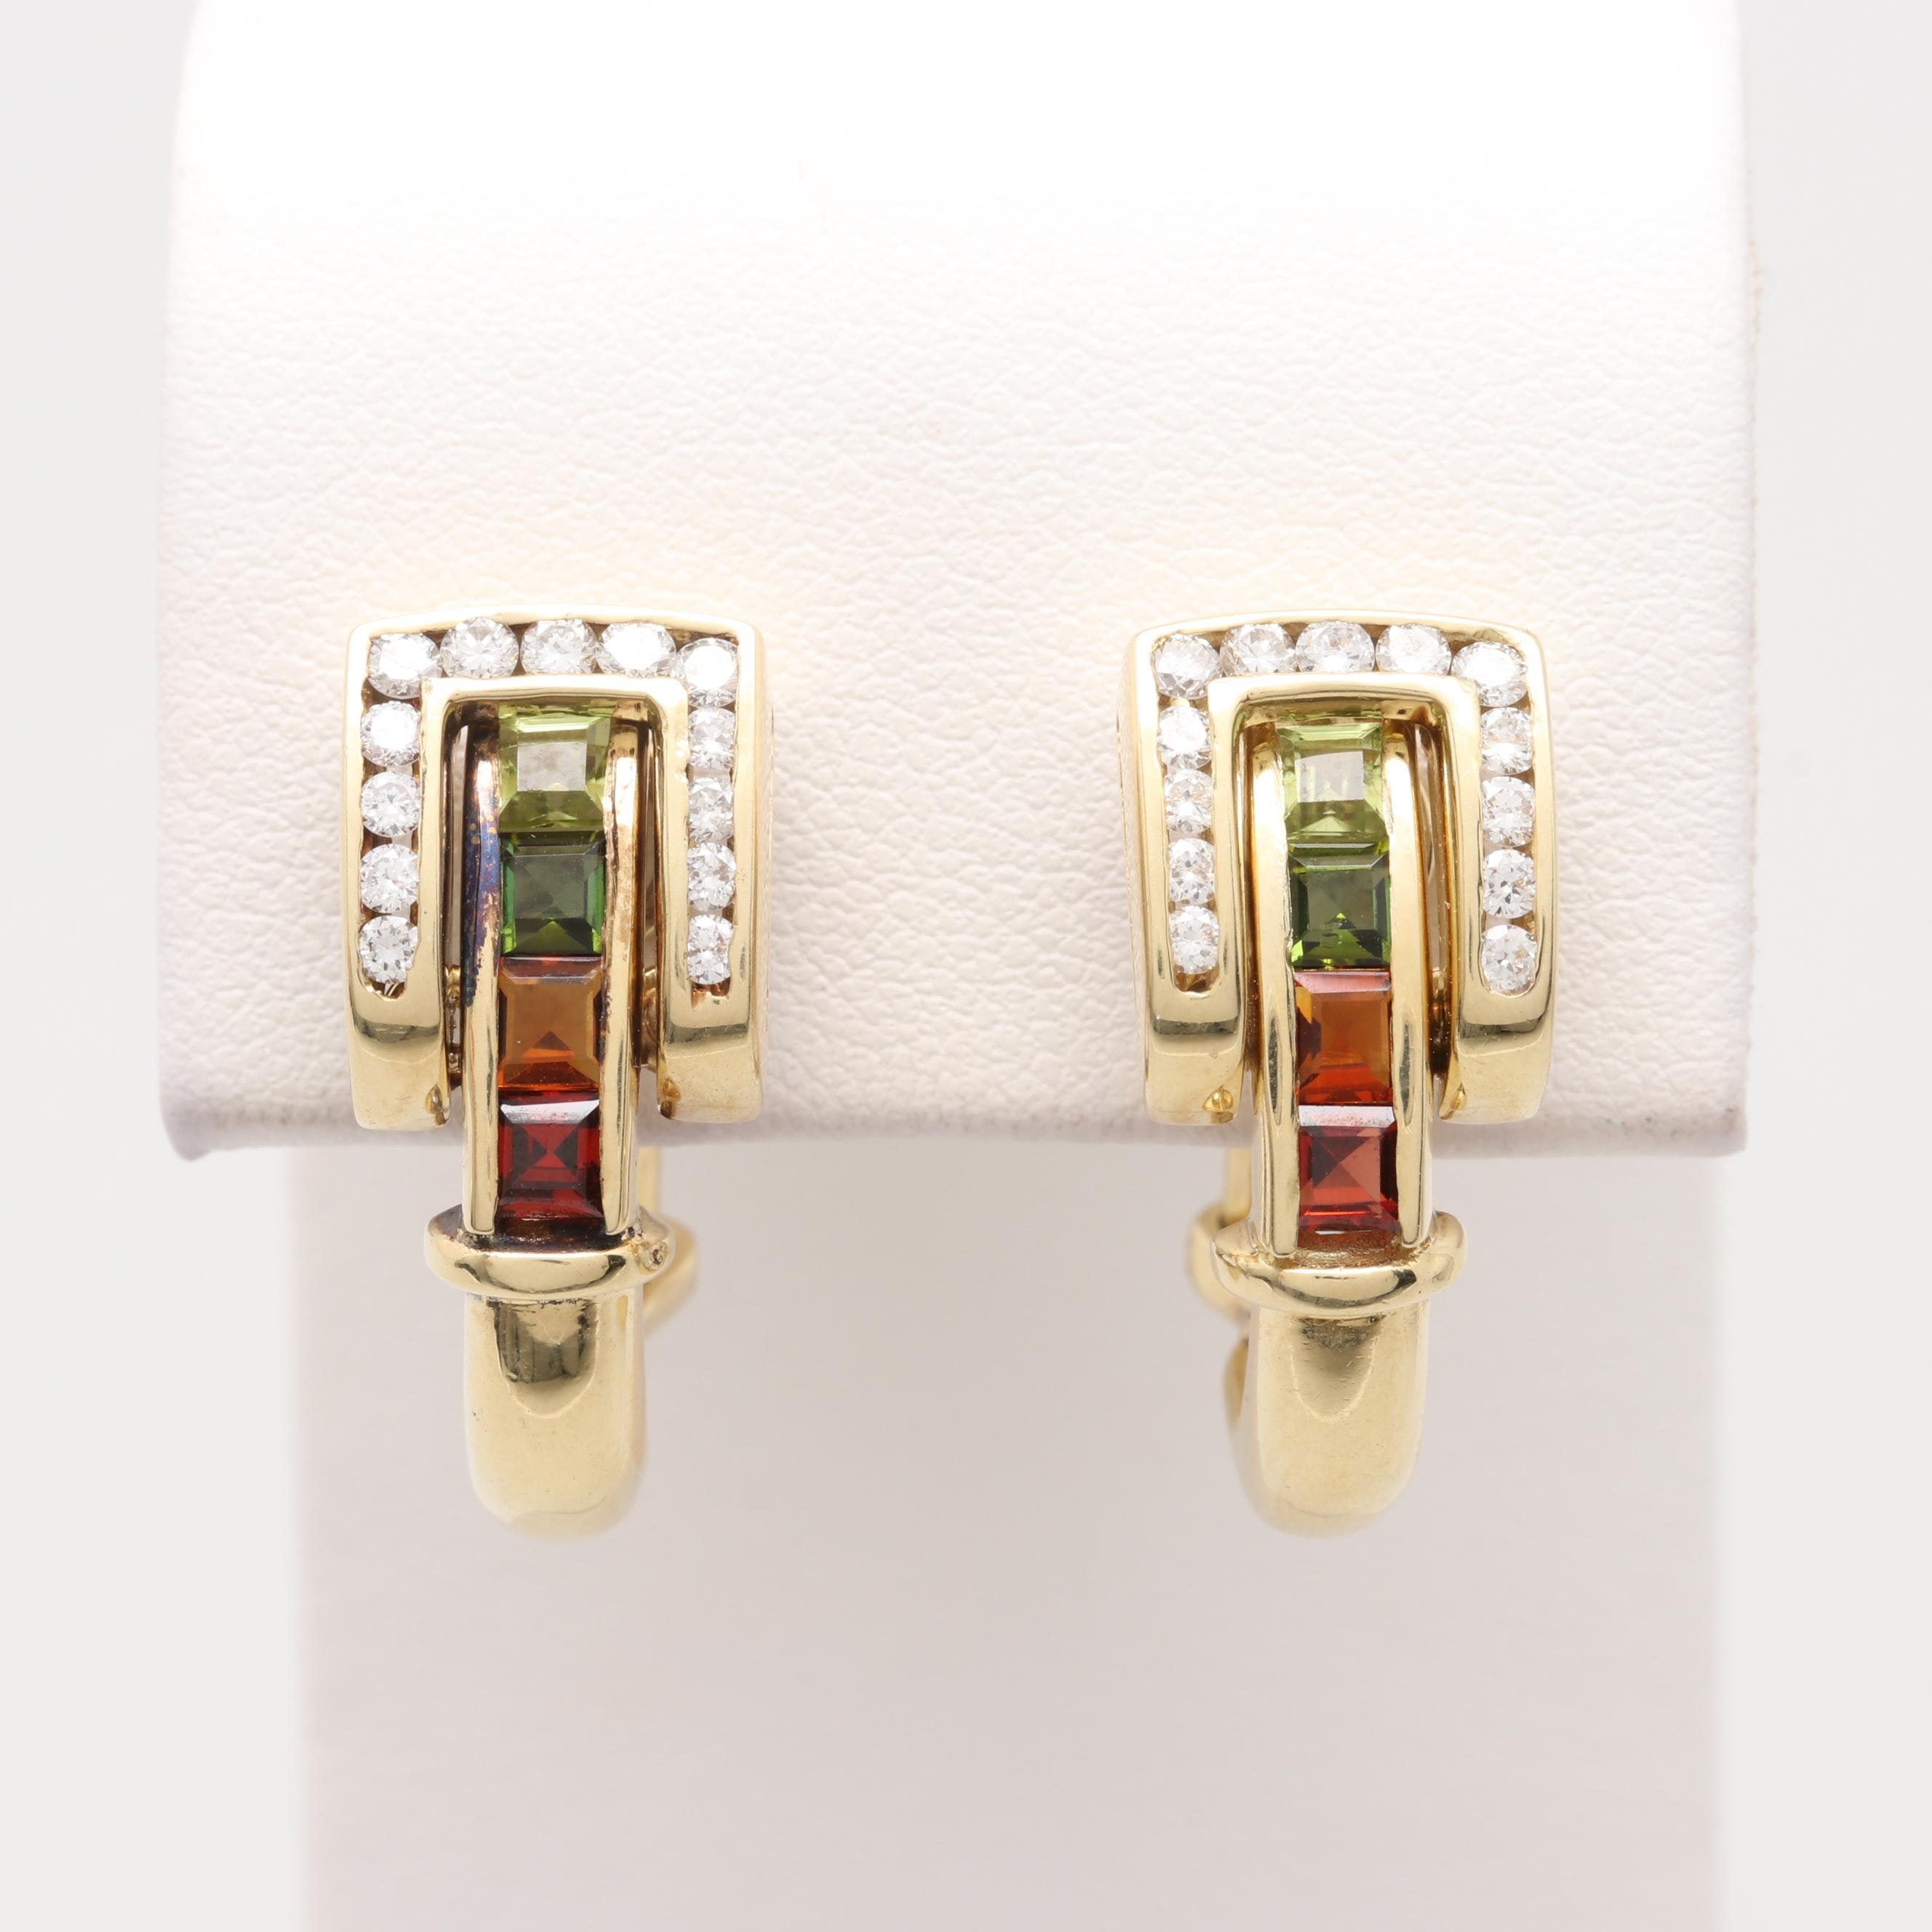 14K Yellow Gold Buckle Motif Omega Back Earrings with Peridot and Diamond